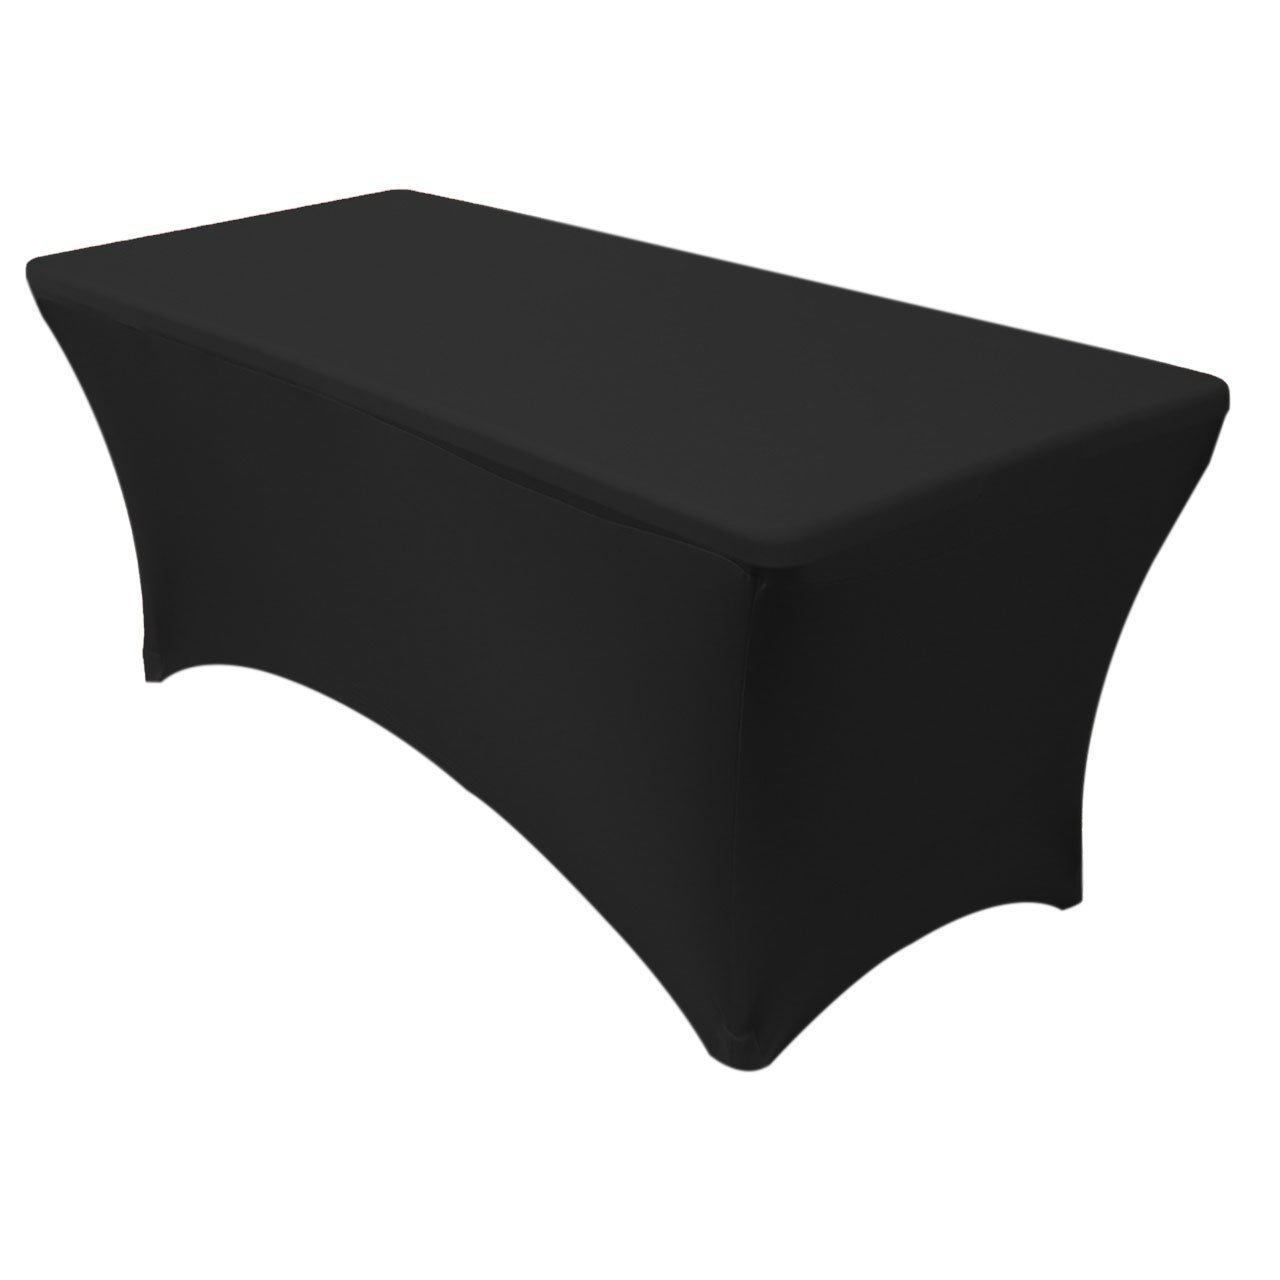 SUPERIOR QUALITY Rectangular Stretch Tablecloth Pick from sizes 4ft, 6ft, 8ft (Black)-Spandex Tight Fit Table Cover for parties, trade shows, Djs, weddings and events of ALL kinds. (8 Foot)